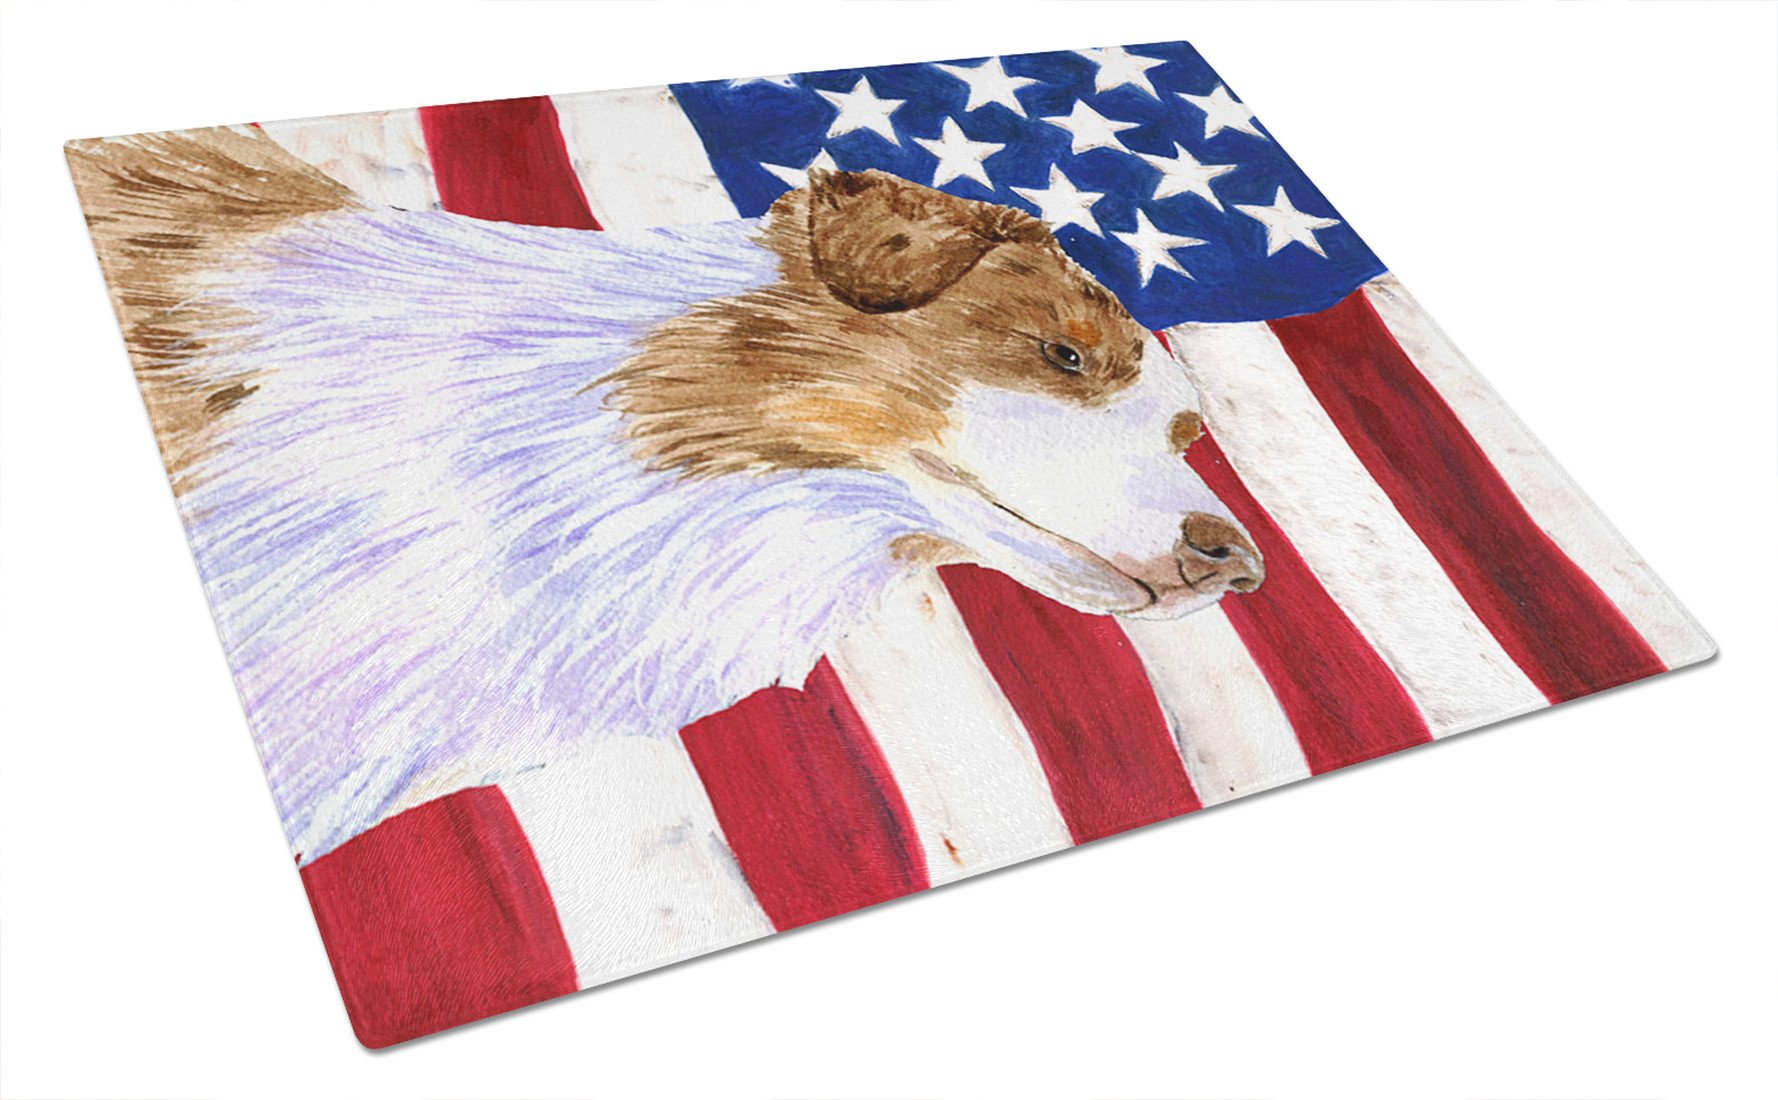 USA American Flag with Australian Shepherd Glass Cutting Board Large by Caroline's Treasures